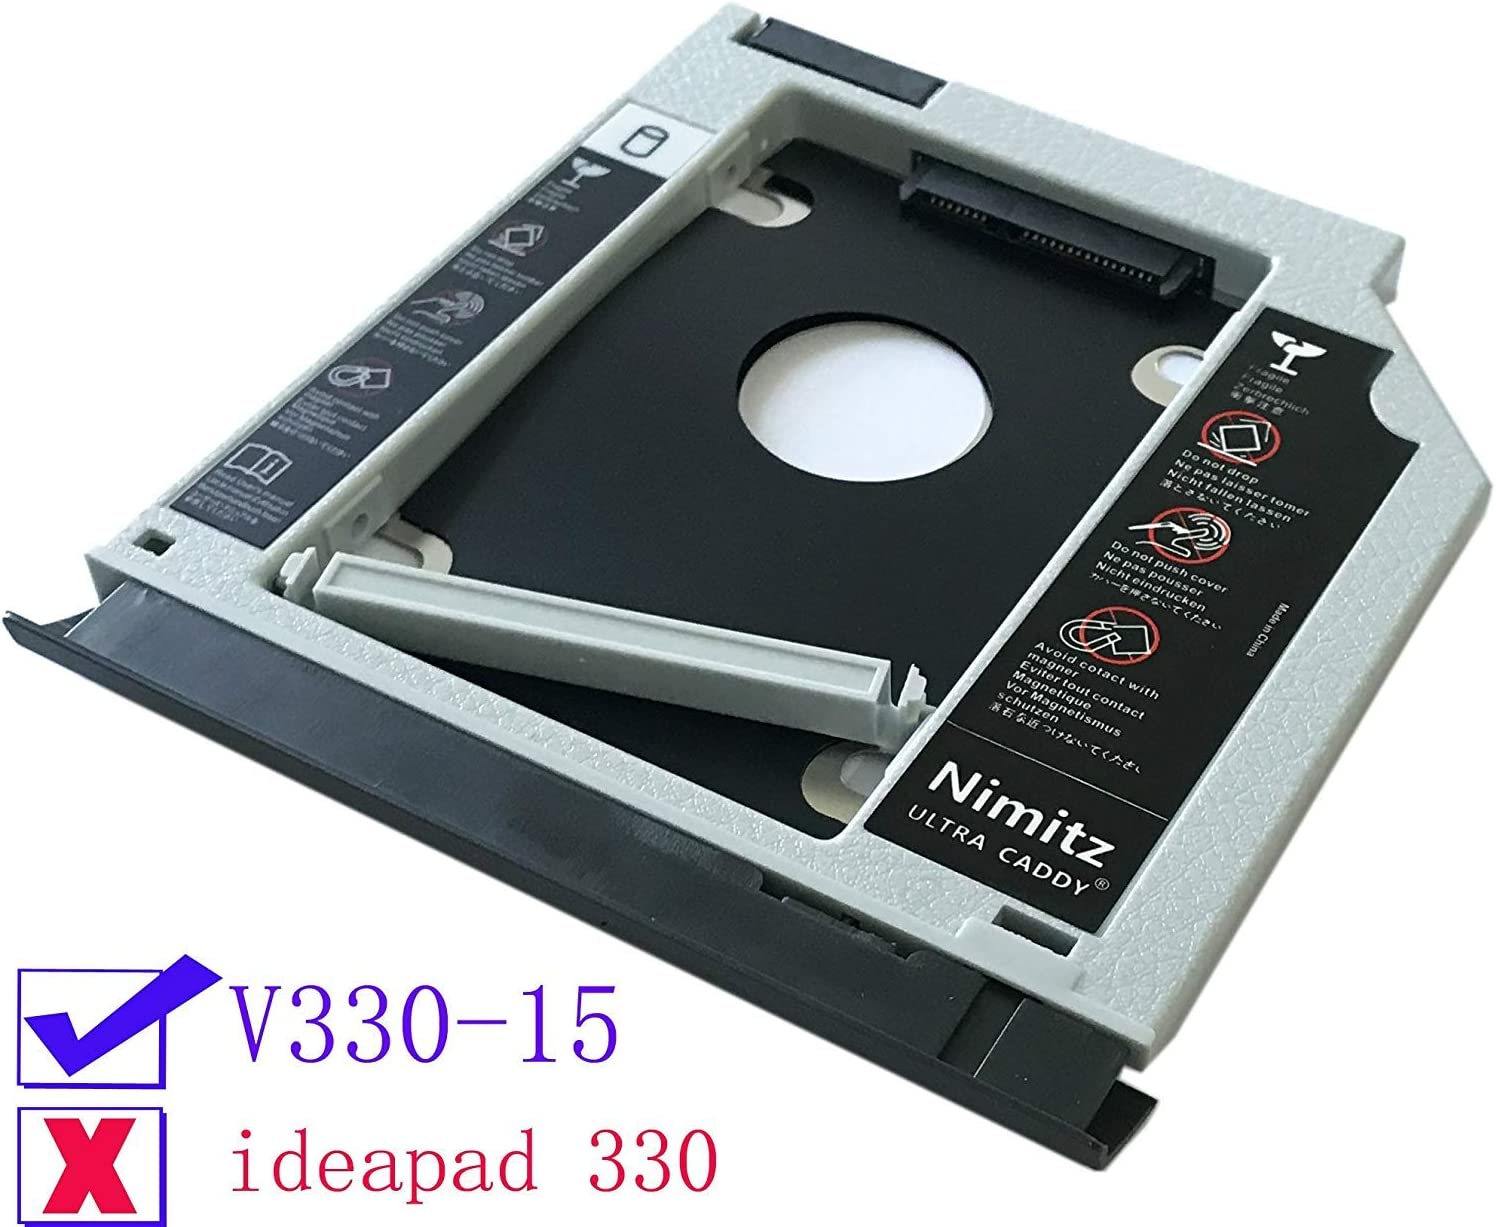 ULTRACADDY 2ª HDD SSD Disco Duro Caddy para Lenovo V330-15 con ...